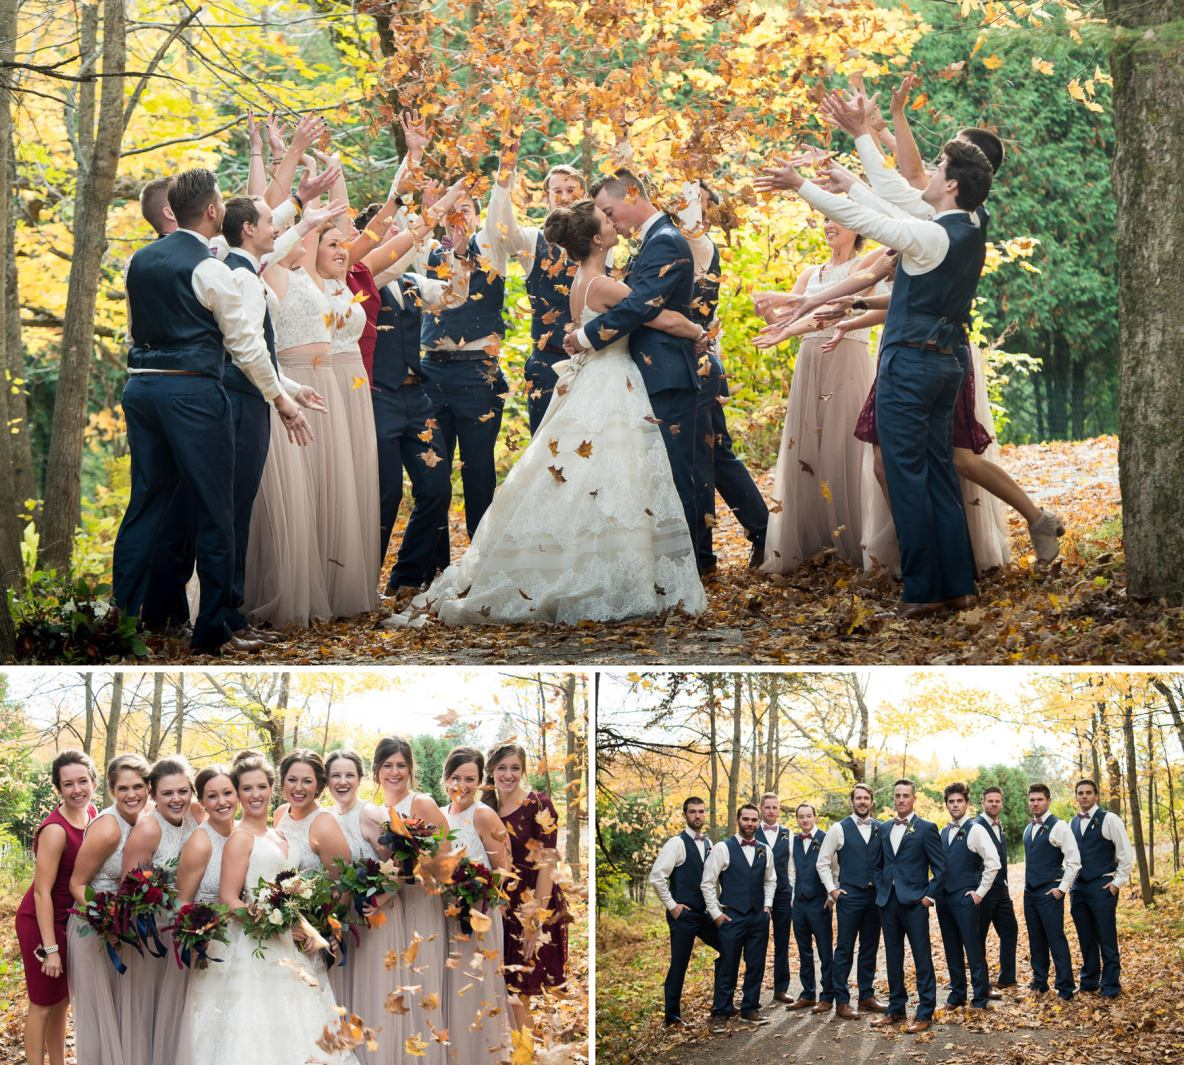 Wedding party outside in the fall colors.